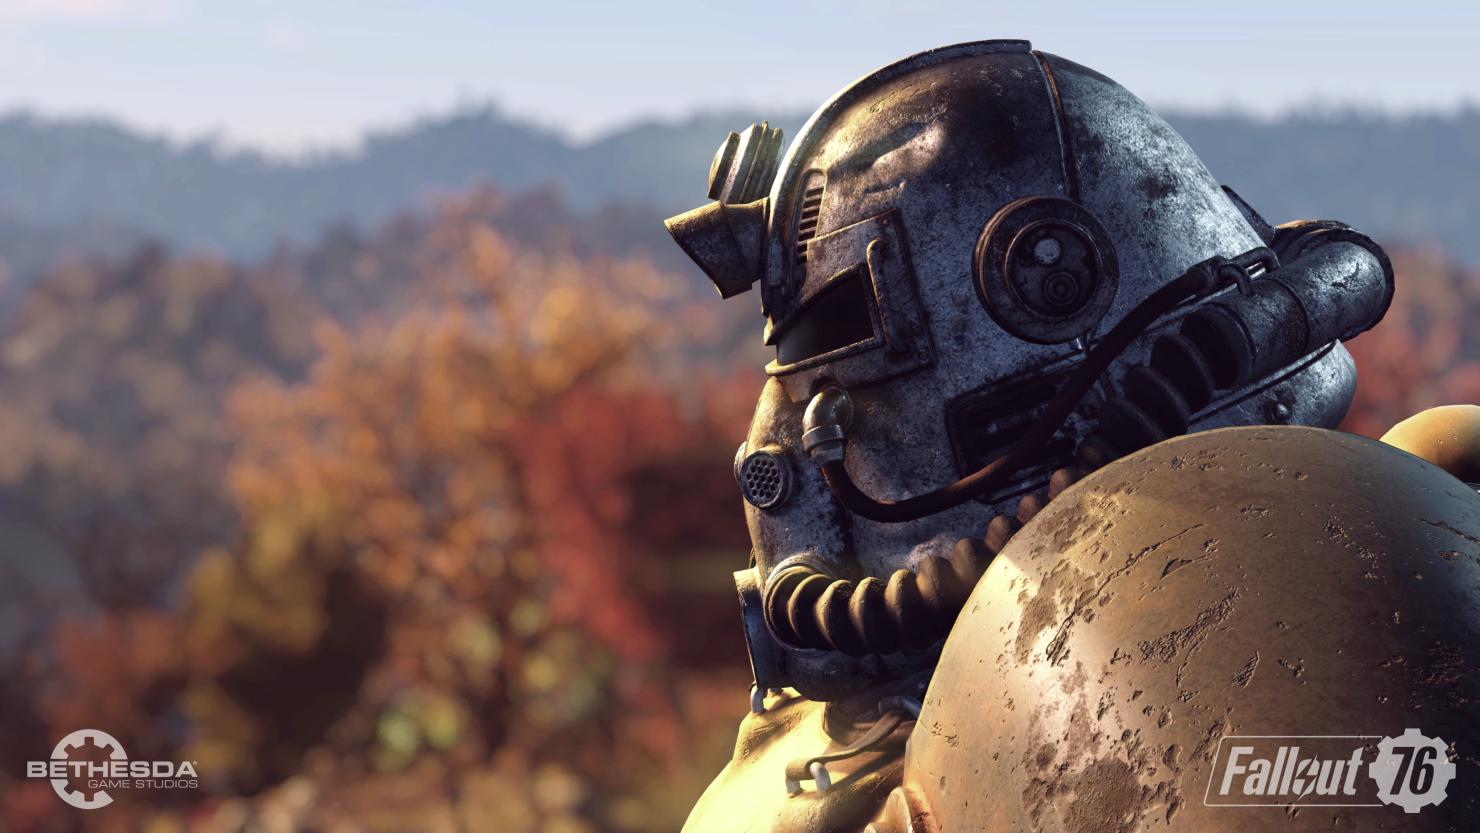 fallout-76-type-t-fuse-location